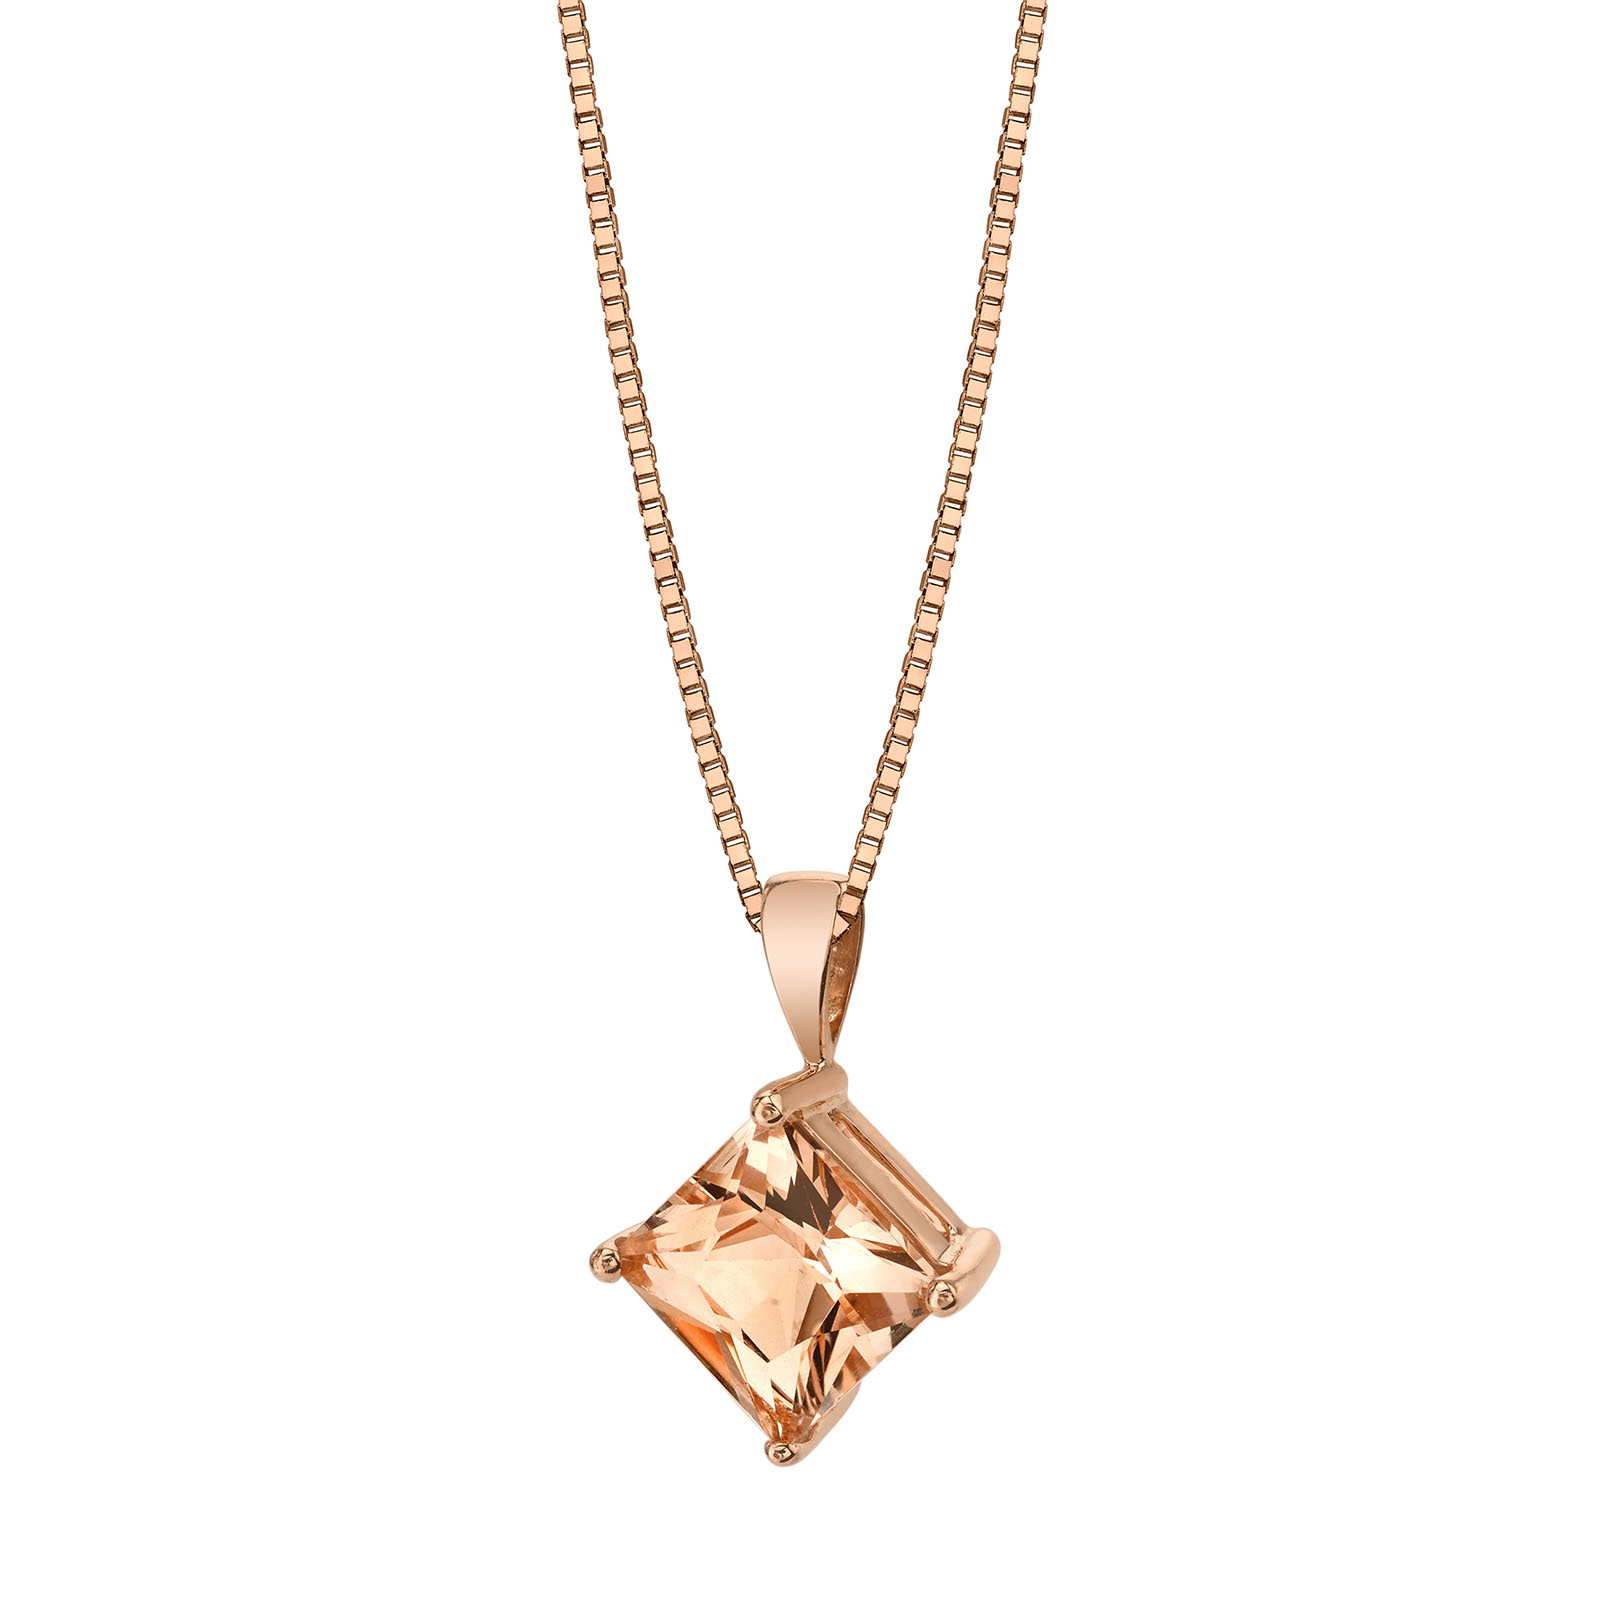 Princess Cut Morganite 9ct Rose Gold Pendant Necklace with Rose Gold Plated Silver Chain